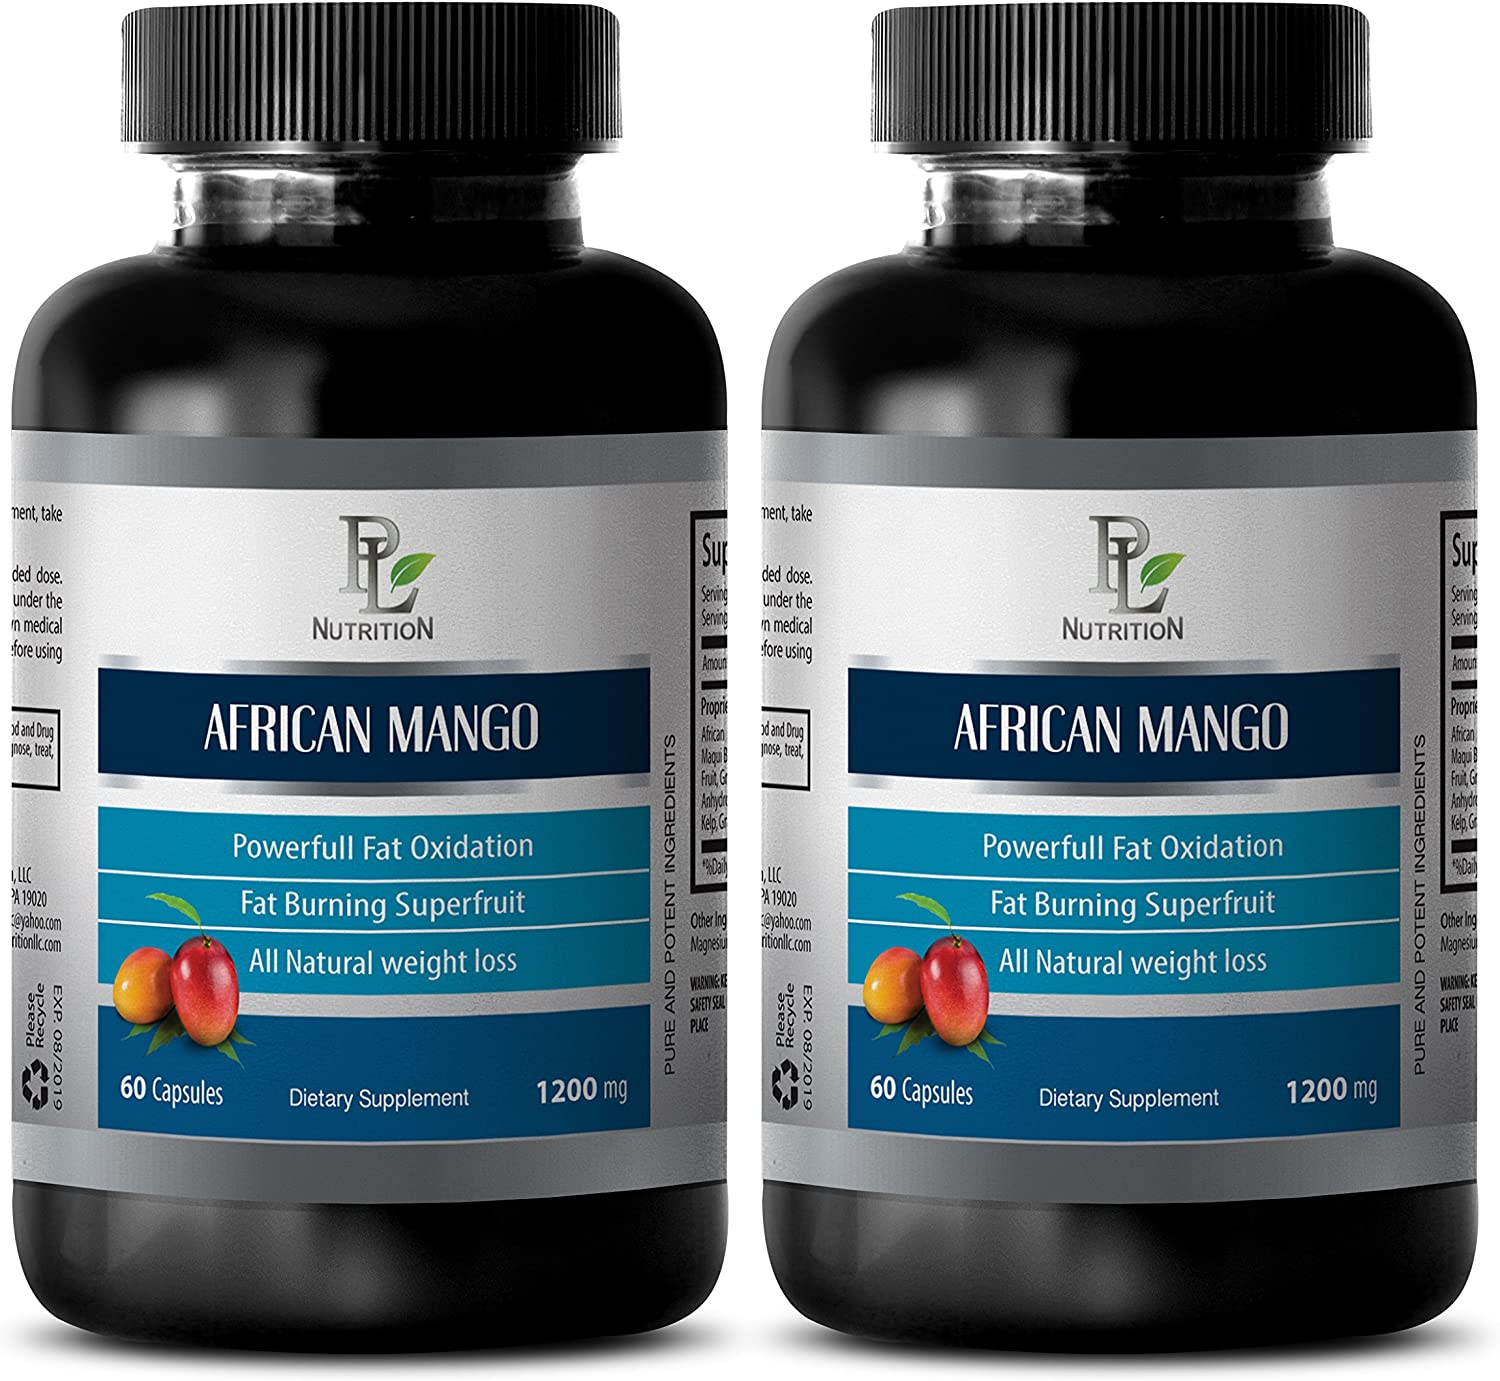 Weight Loss Energy Pills Fort Worth Mall 1200MG Mango Max 49% OFF African -